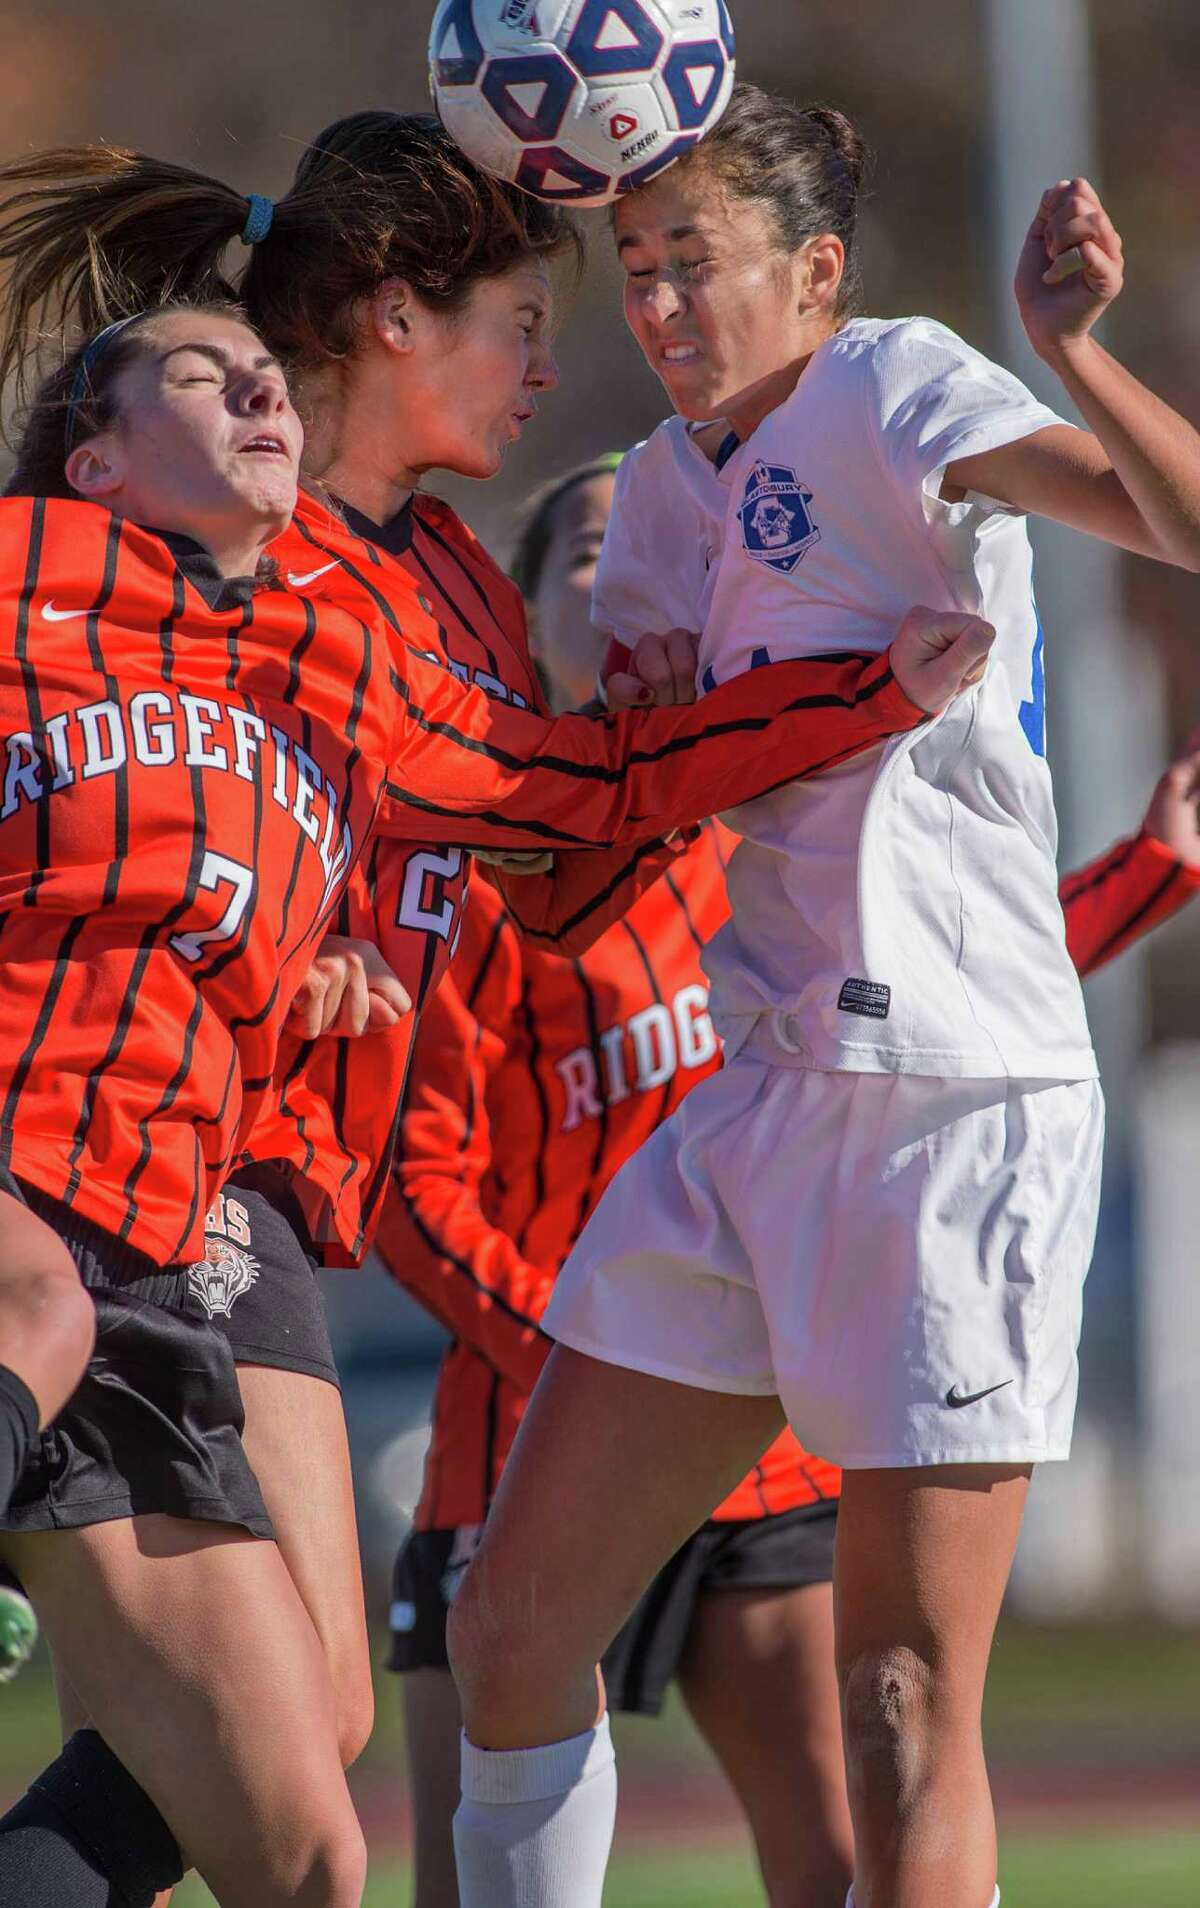 Ridgefield High Schools Sarah Battipaglia and Kathryn Barlow collide into Glastonbury High Schools Sabrina Glaser while trying to head the ball during the CIAC Class LL girls soccer championship game played at West Haven High School, West Haven, CT on Saturday, November 21, 2015.